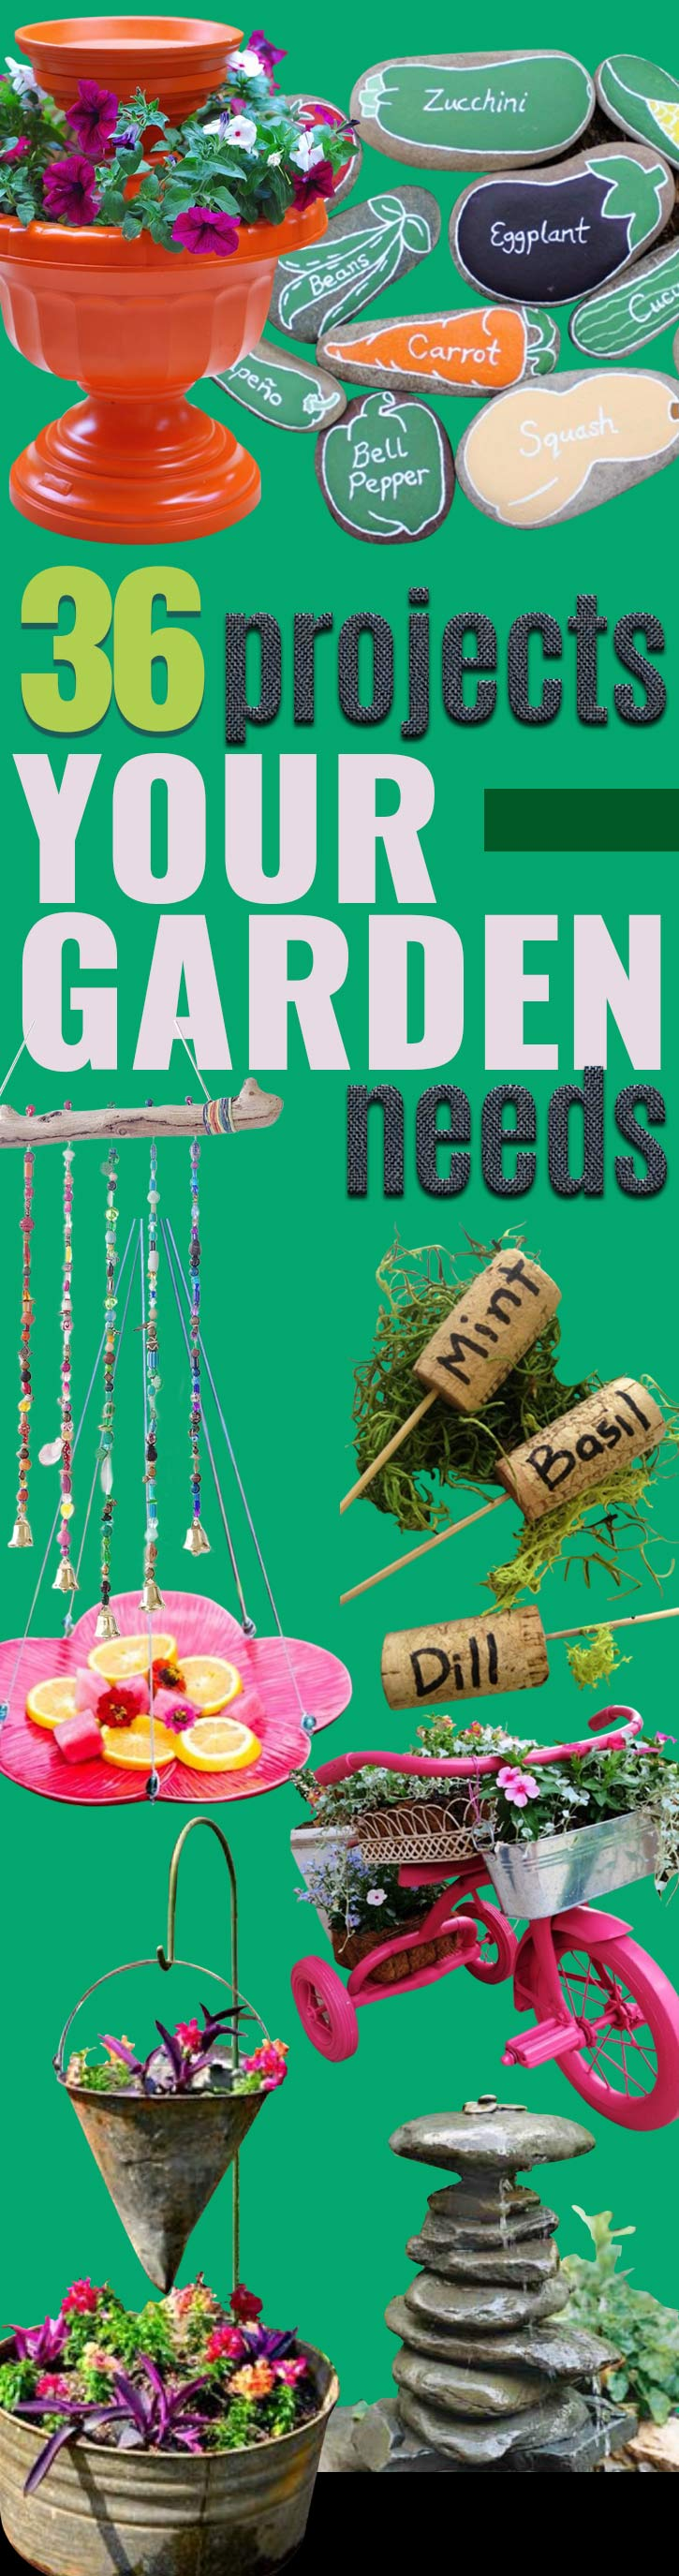 DIY Ideas for Your Garden - Cool Projects for Spring and Summer Gardening - Planters, Rocks, Markers and Handmade Decor for Outdoor Gardens